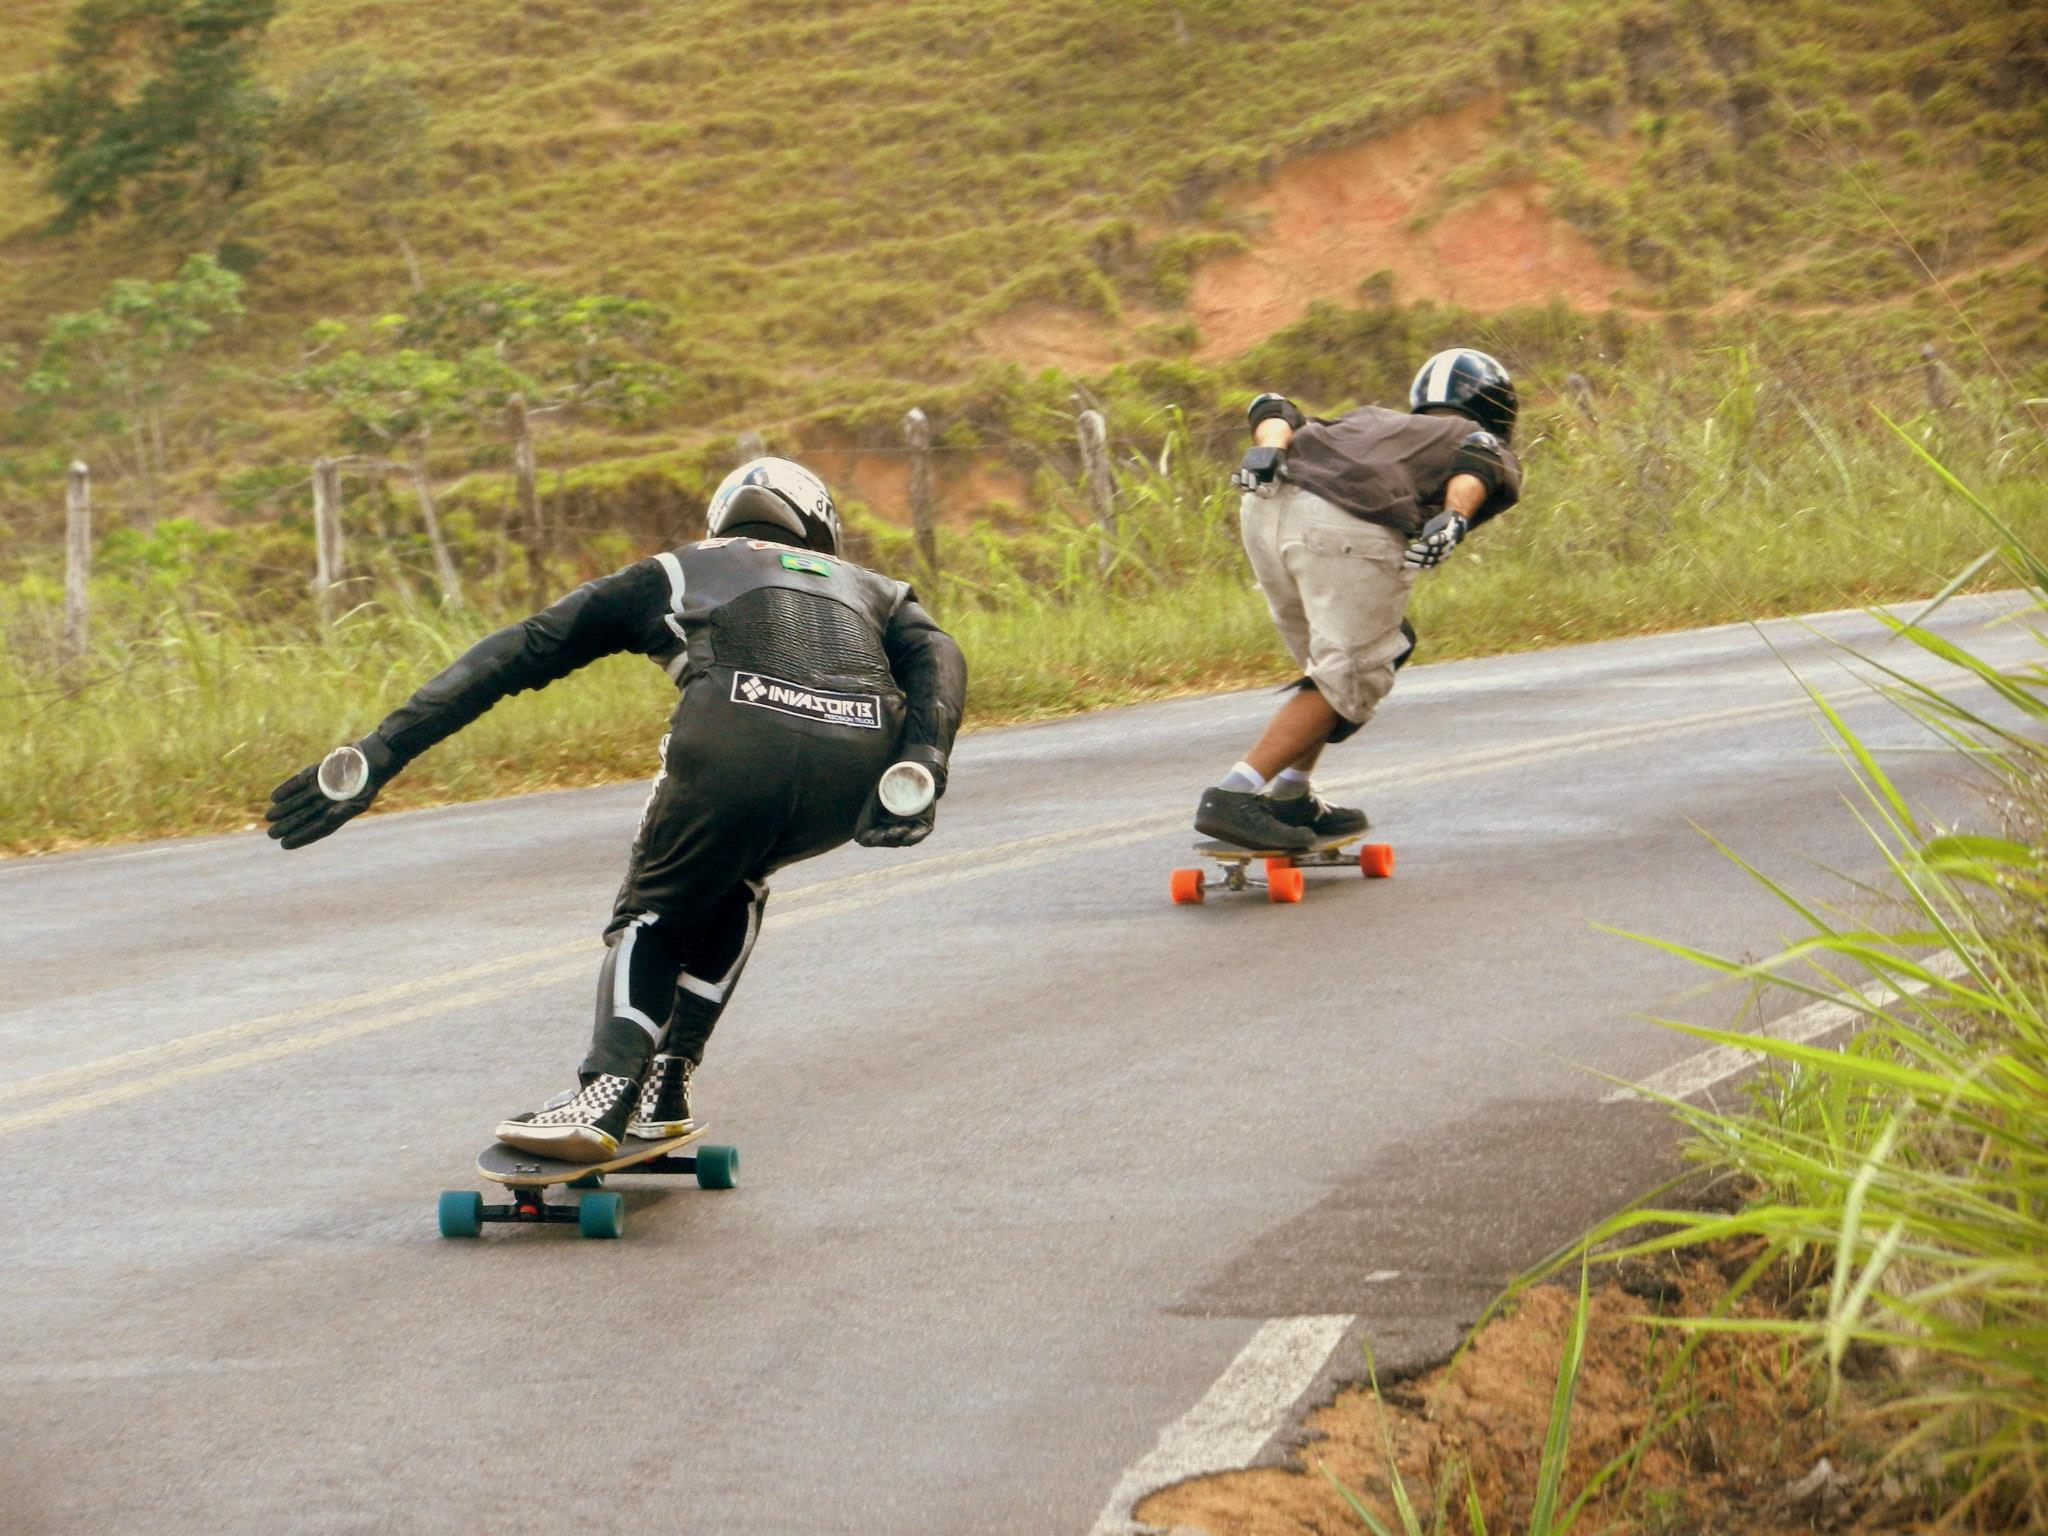 Best Longboard Video: Crazy Brazilian Longboarders Ride Close To Death During Downhill (VIDEO), Crazy Brazilian Longboarders Ride Close To Death (VIDEO), crazy longboard video, Crazy downhill longboarder, longboard, longboard video, longboard downhill video, crazy brazilian longboarders, best place to ride longboard in brazil, brazil longboard best sites, crazy longboarders, downhill longboard, downhill longboarder, Crazy downhill longboarders riding a hill at furious speed in Brazil. Photo: Absorbshop.com, longboard, extreme sport, downhill, extreme longboarders, video